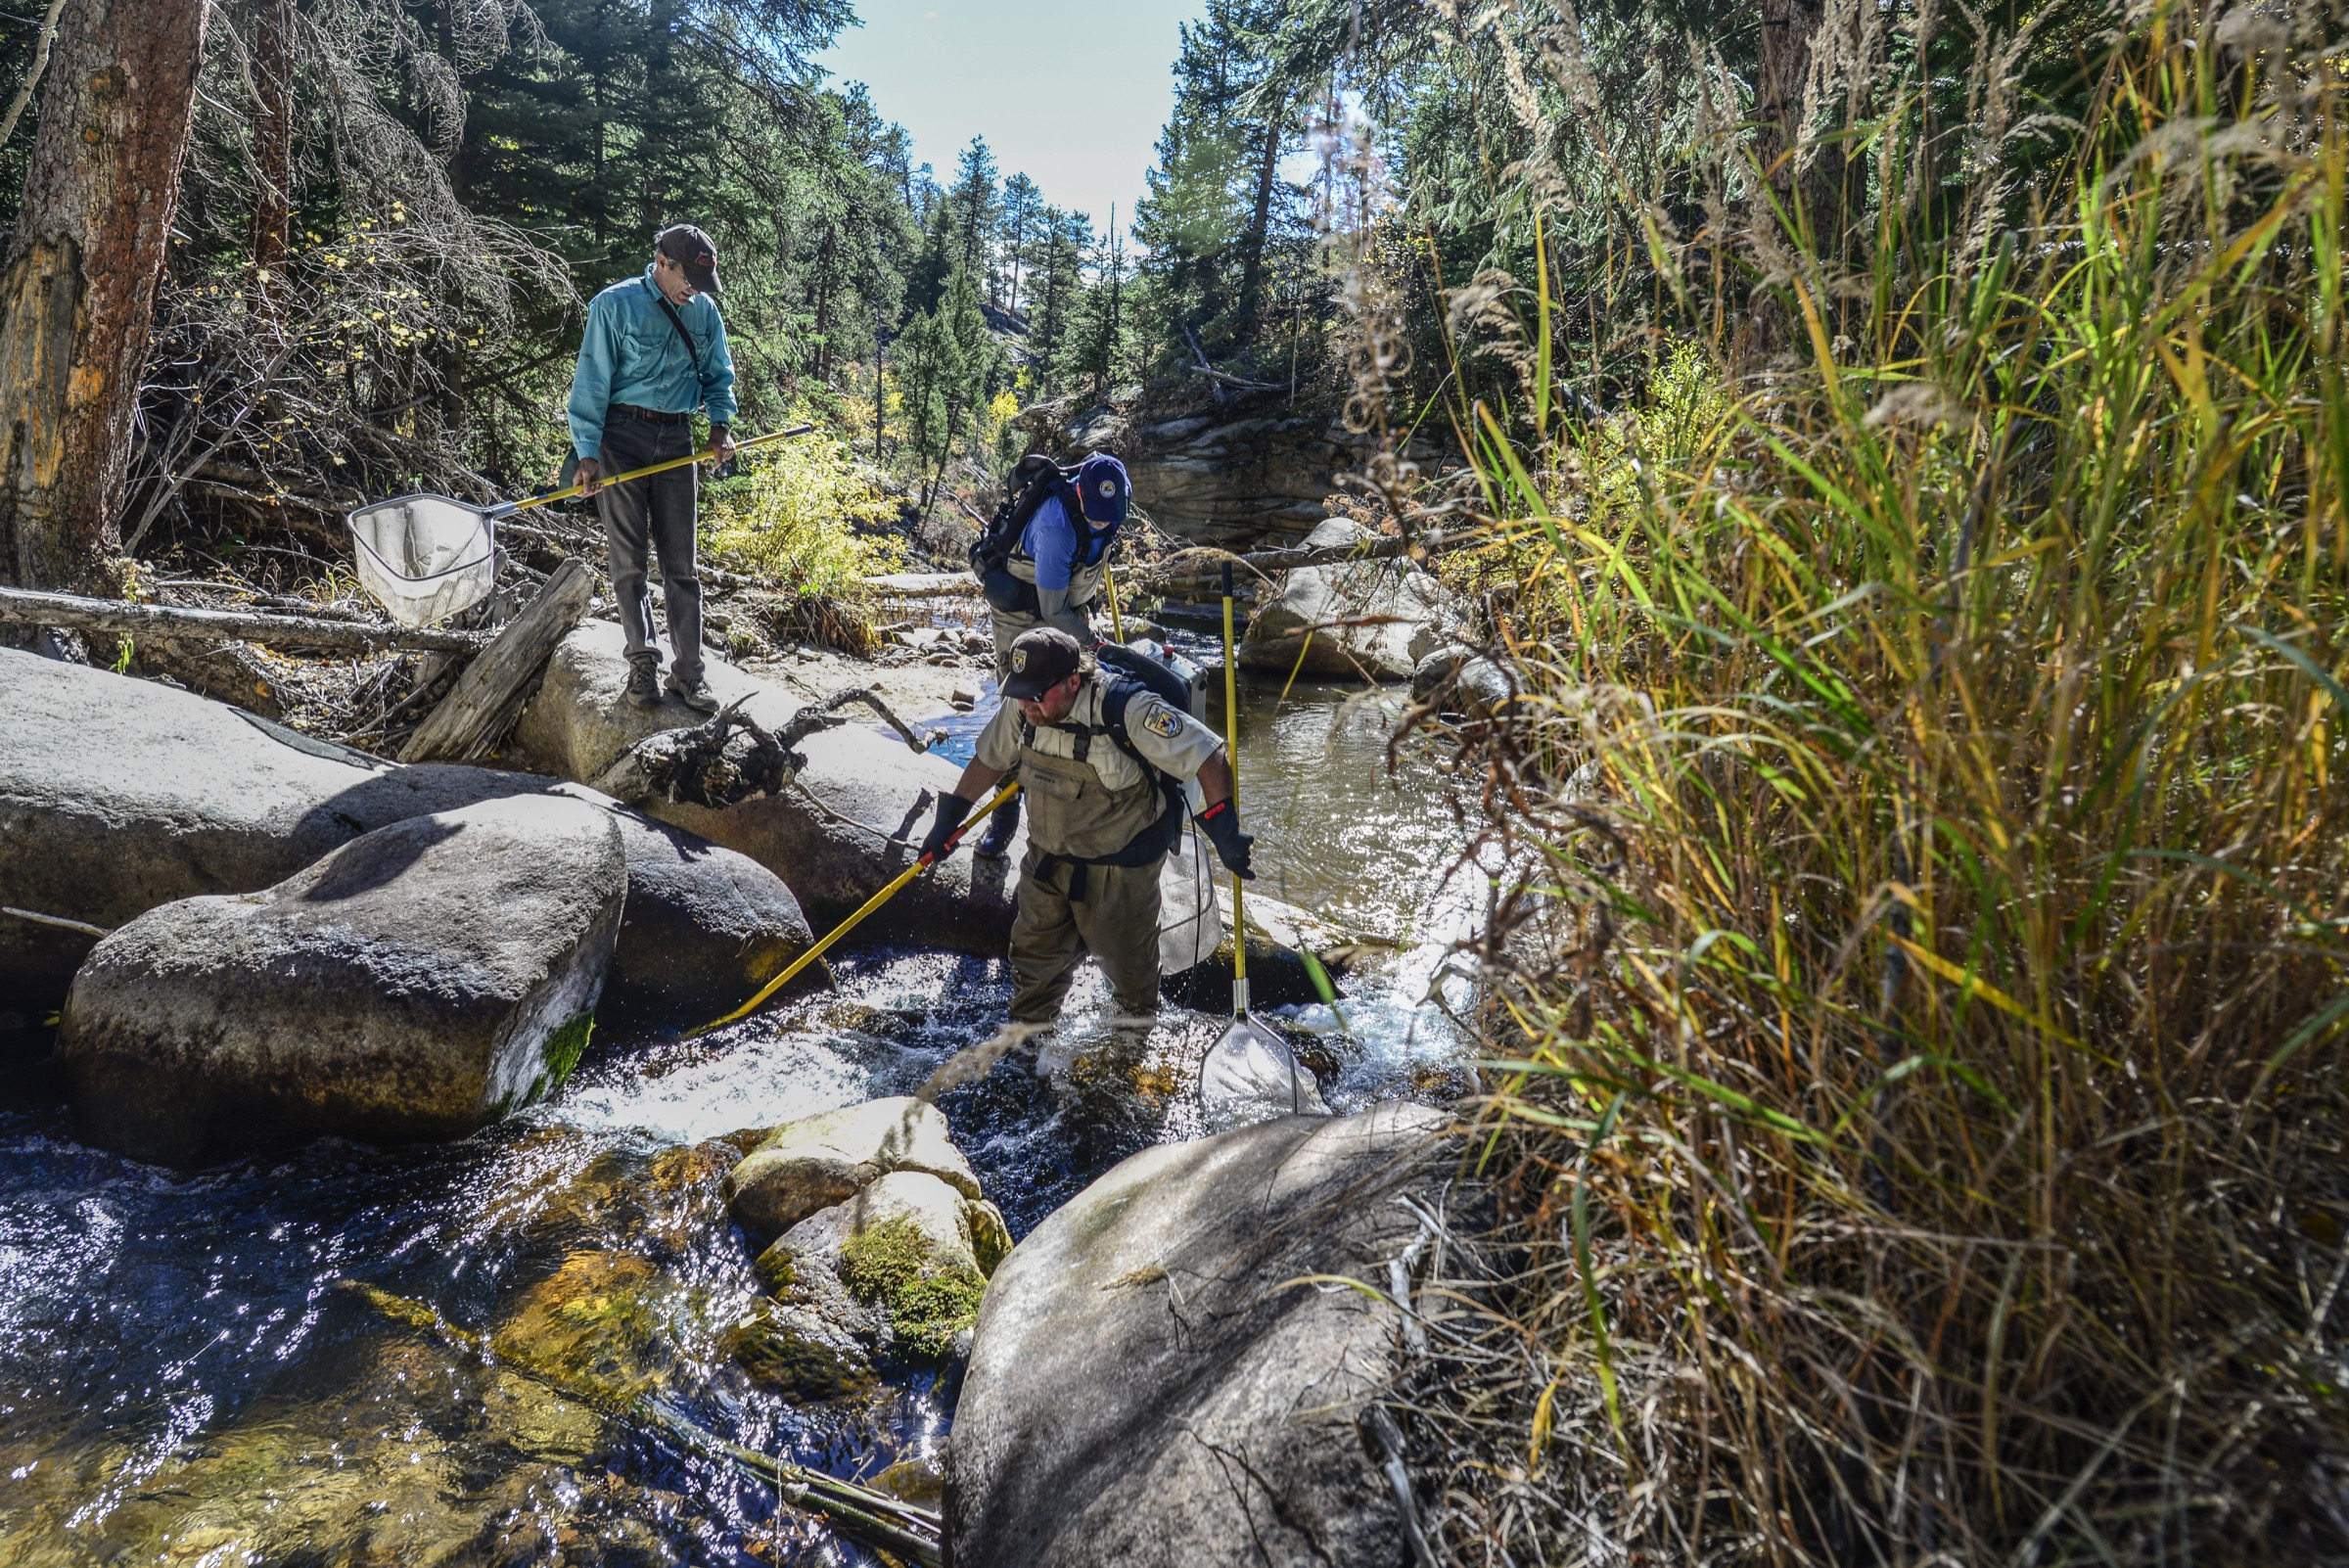 U.S. Fish and Wildlife Service biologist Chris Kennedy and his team work along Rocky Mountain National Park's West Creek, removing introduced cutthroat trout as they go. Photograph by Lindsay Fendt